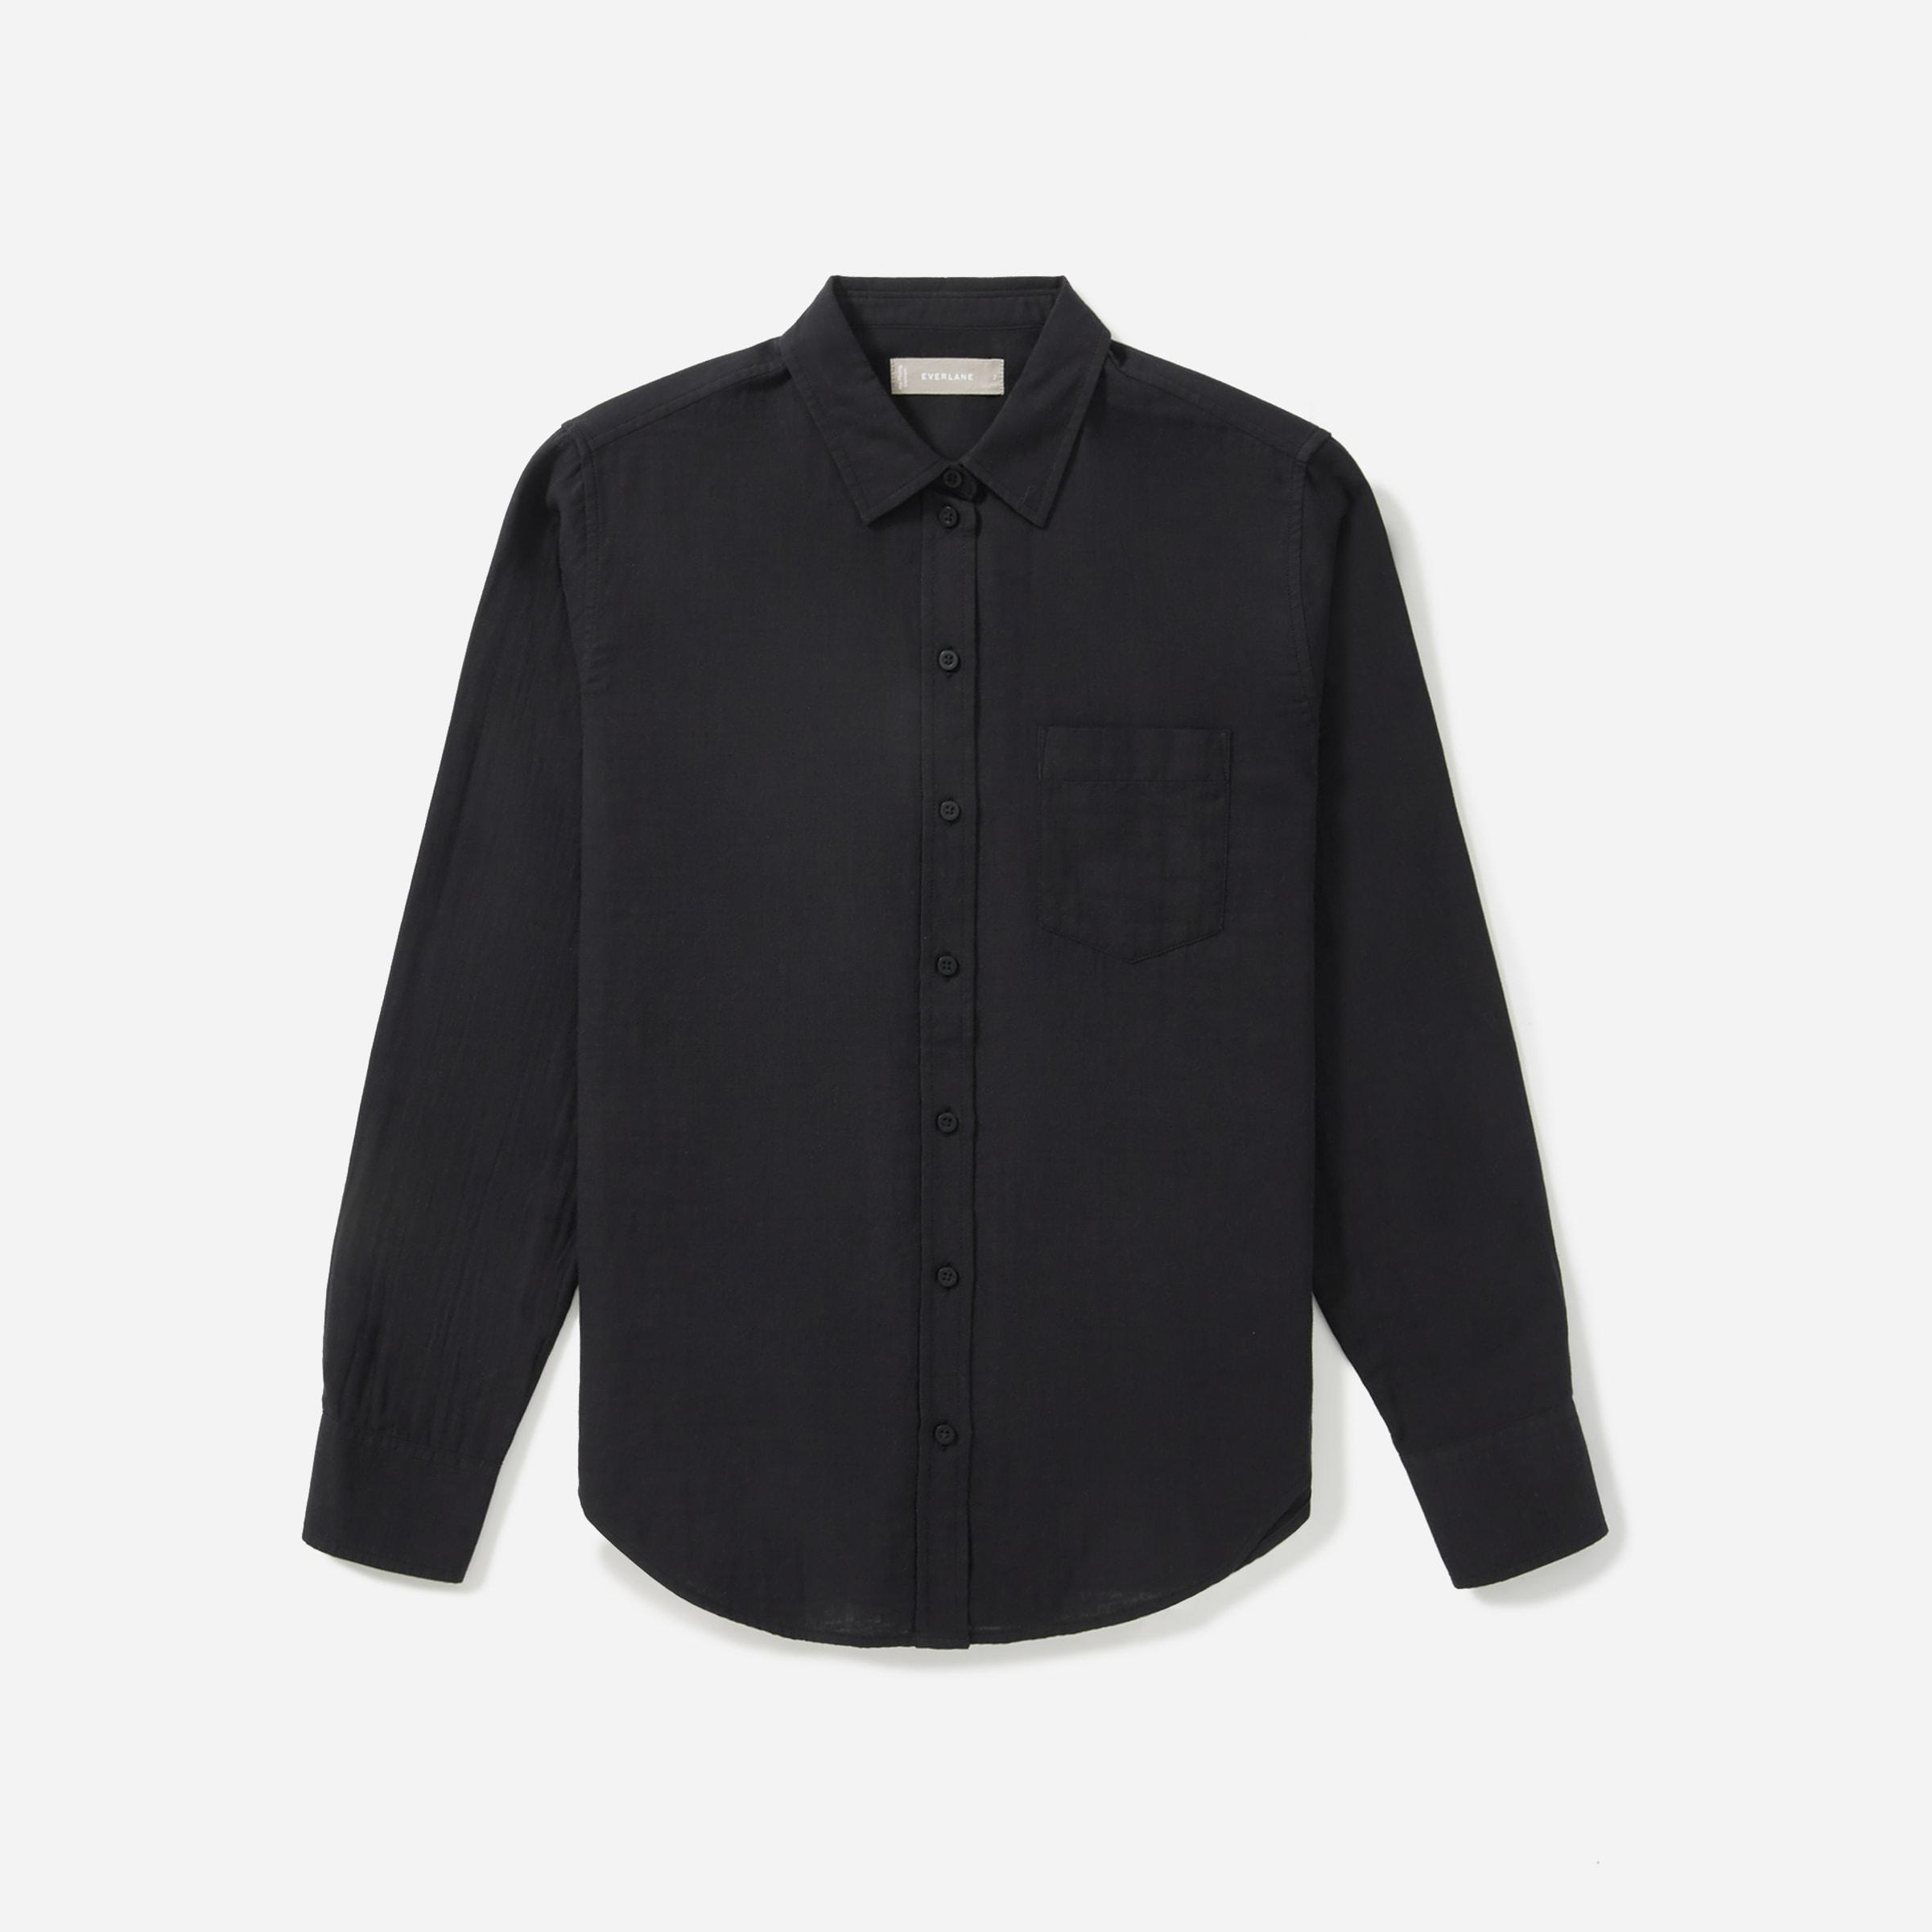 The Double-Gauze Relaxed Shirt 5